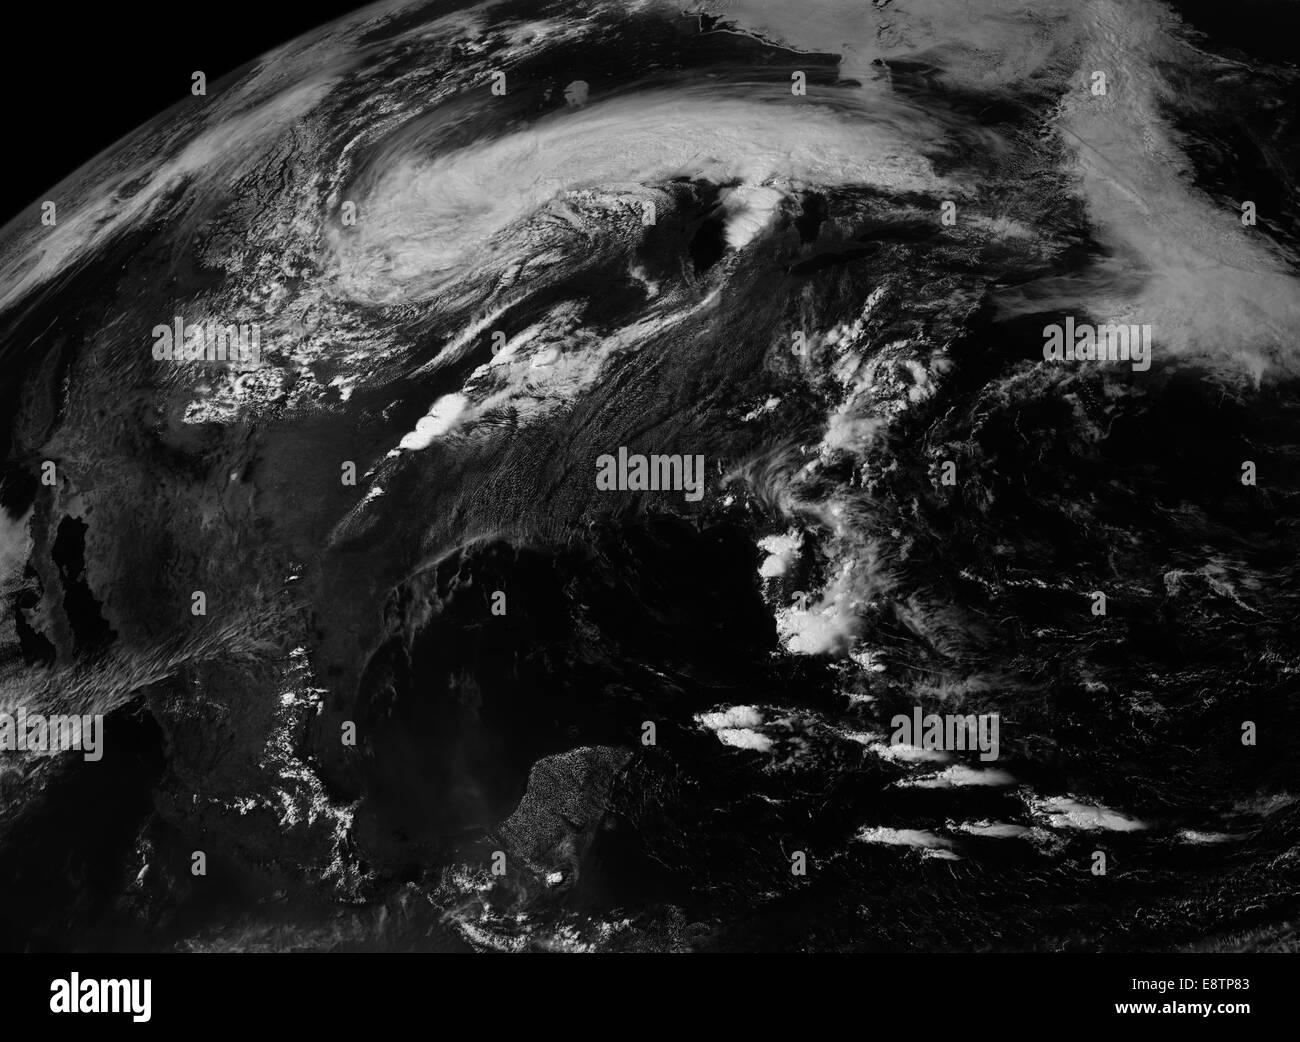 NOAA's GOES-East (Geostationary Operational Environmental Satellite) collected this view of the storm system that - Stock Image